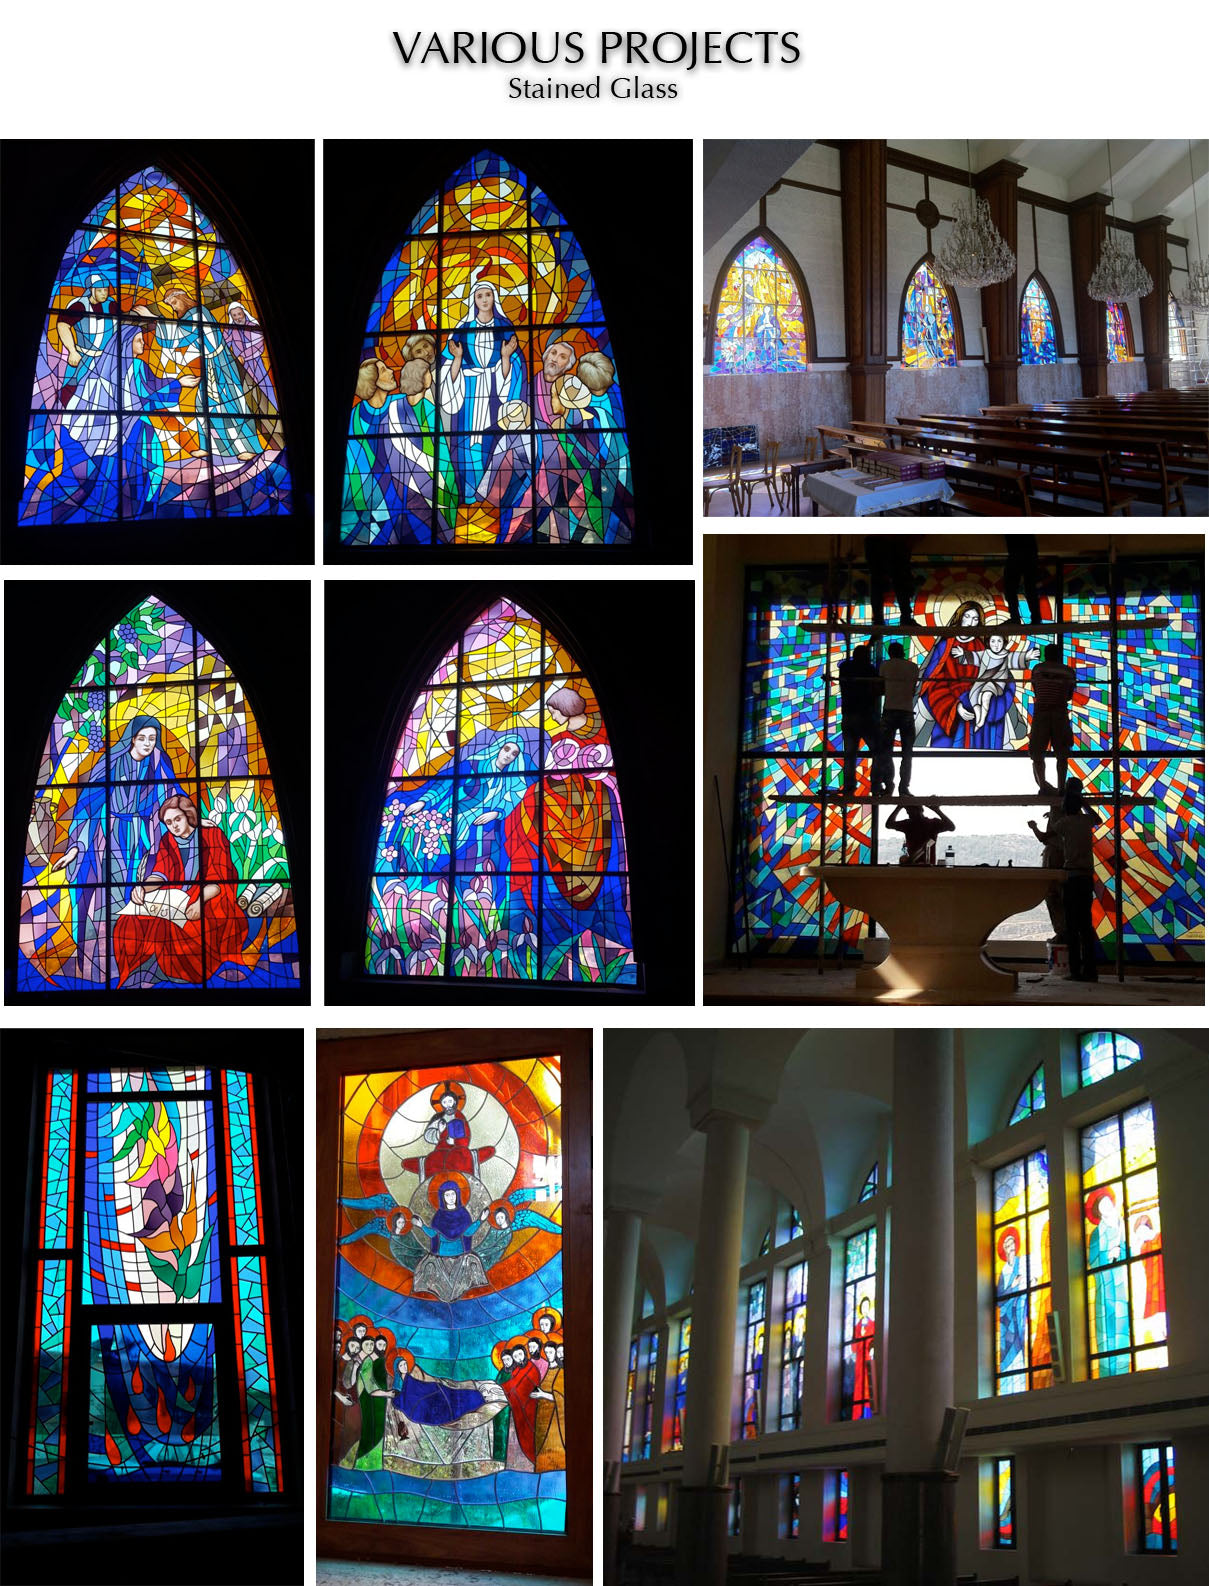 Stained Glass by Chady Elias